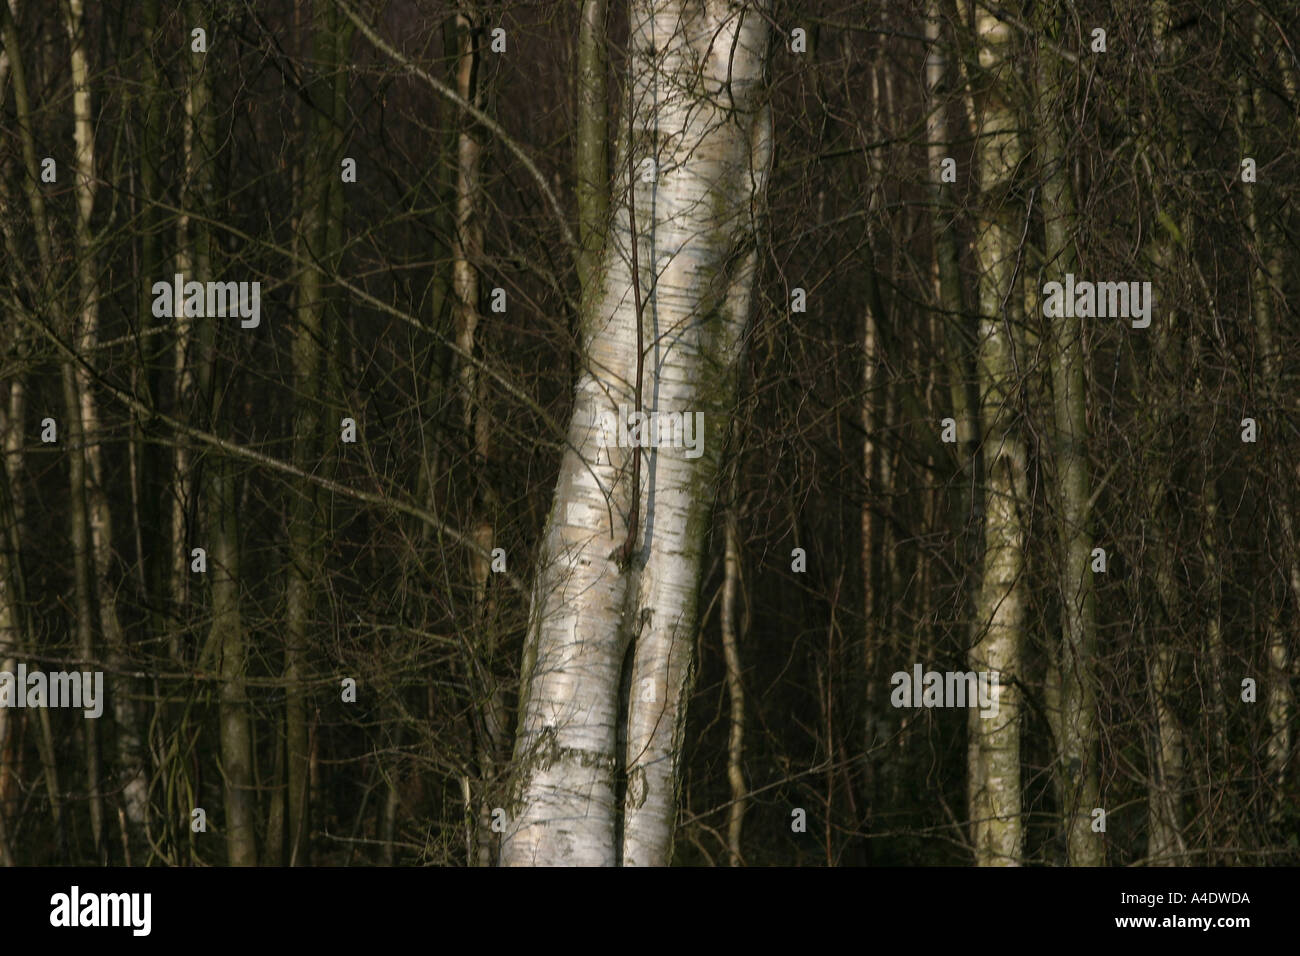 Beech tree bark at Bedgebury National Pinetum in Kent UK - Stock Image